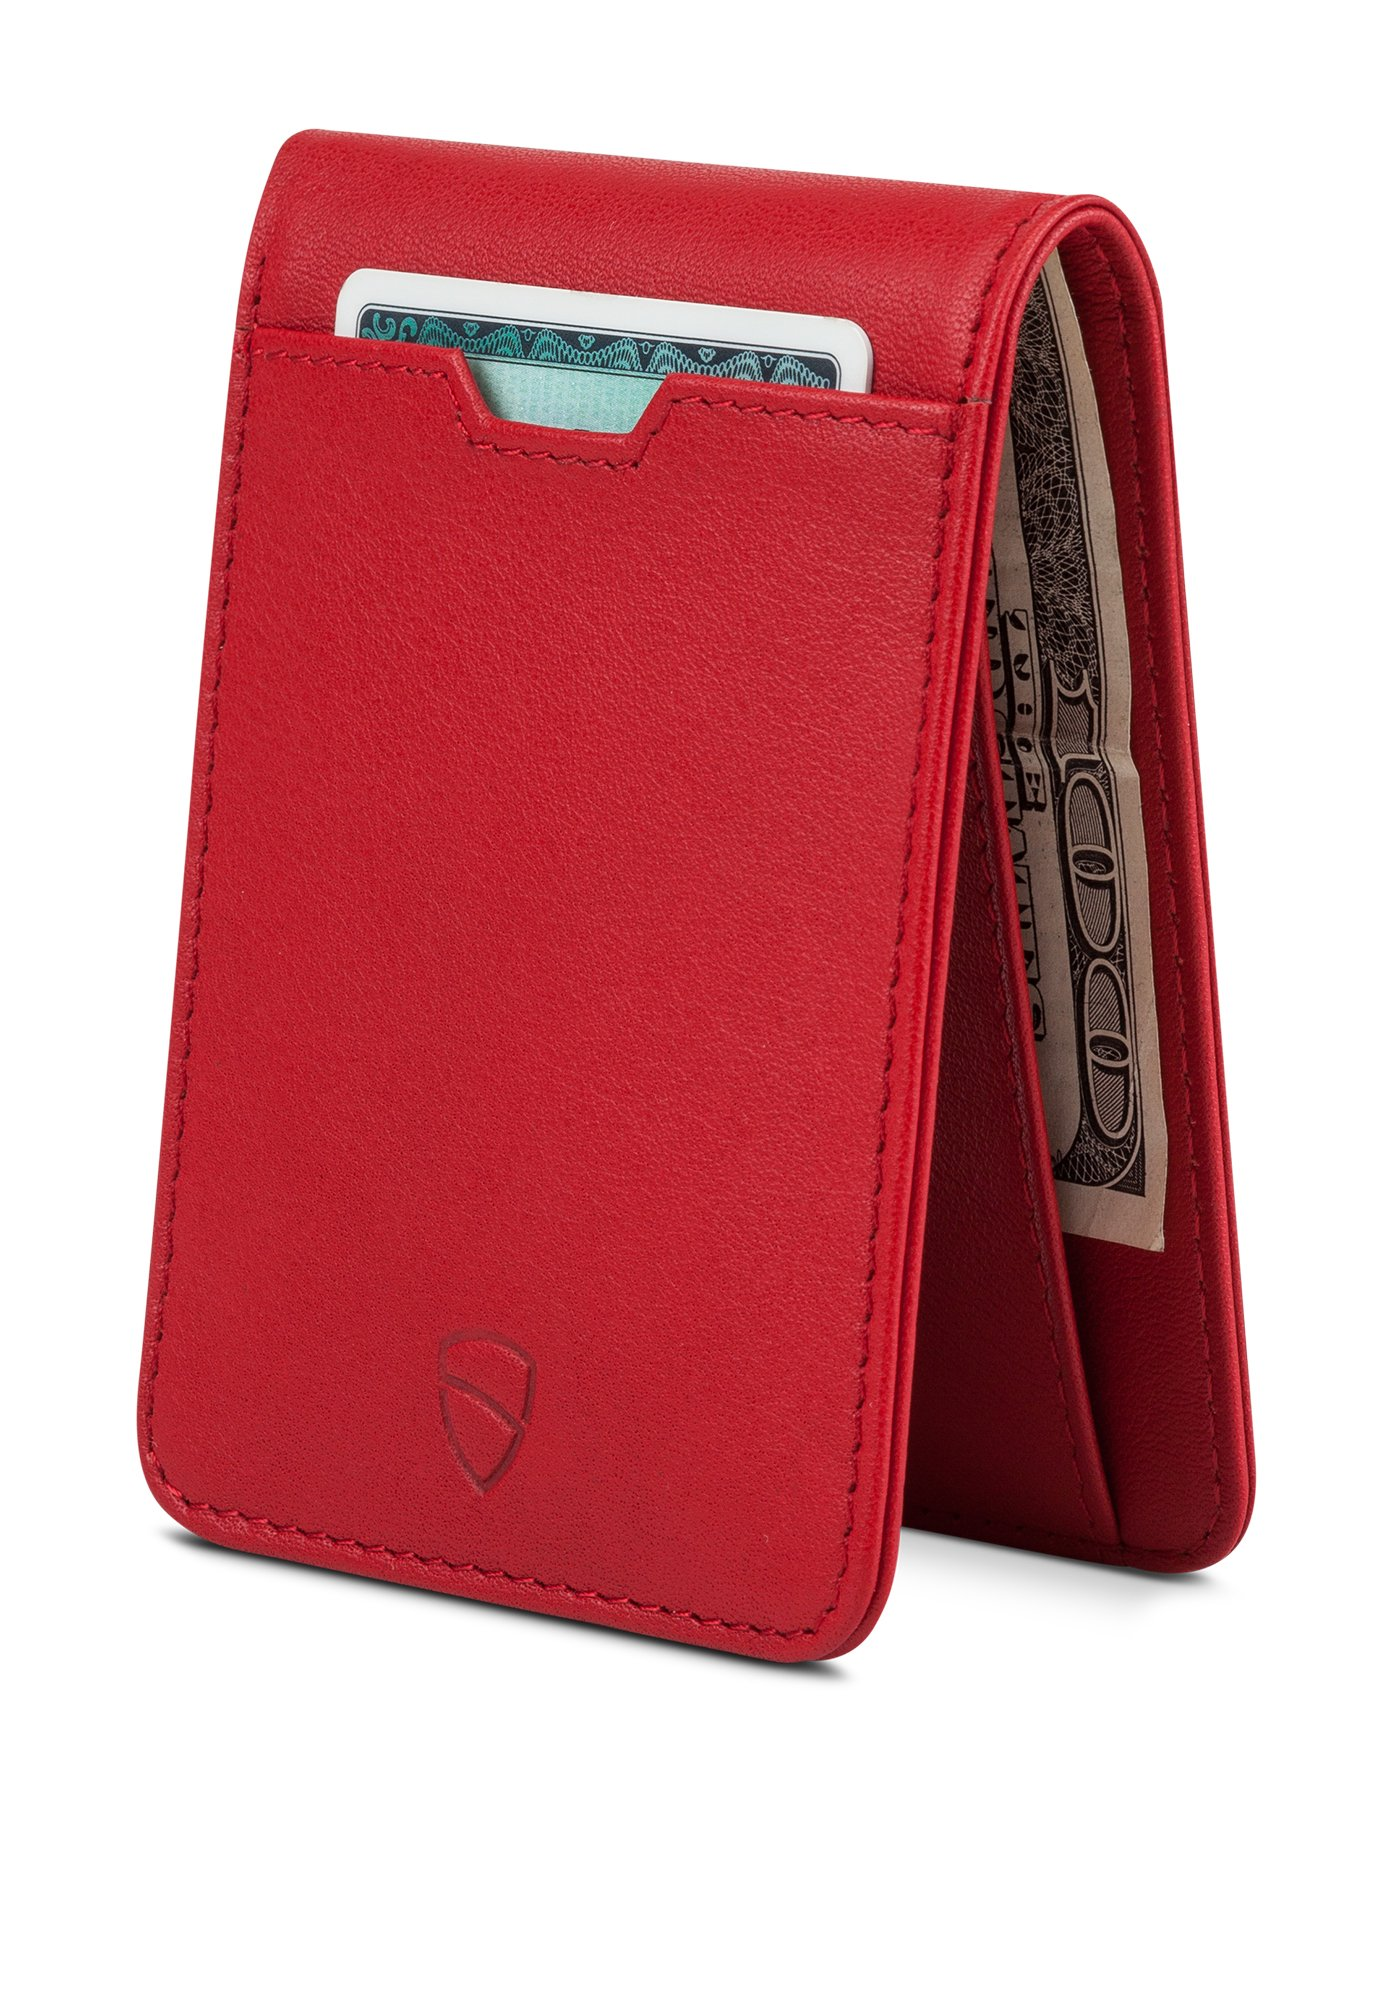 Vaultskin MANHATTAN Slim Bifold Wallet with RFID Protection for Cards and Cash (Carmine Red)